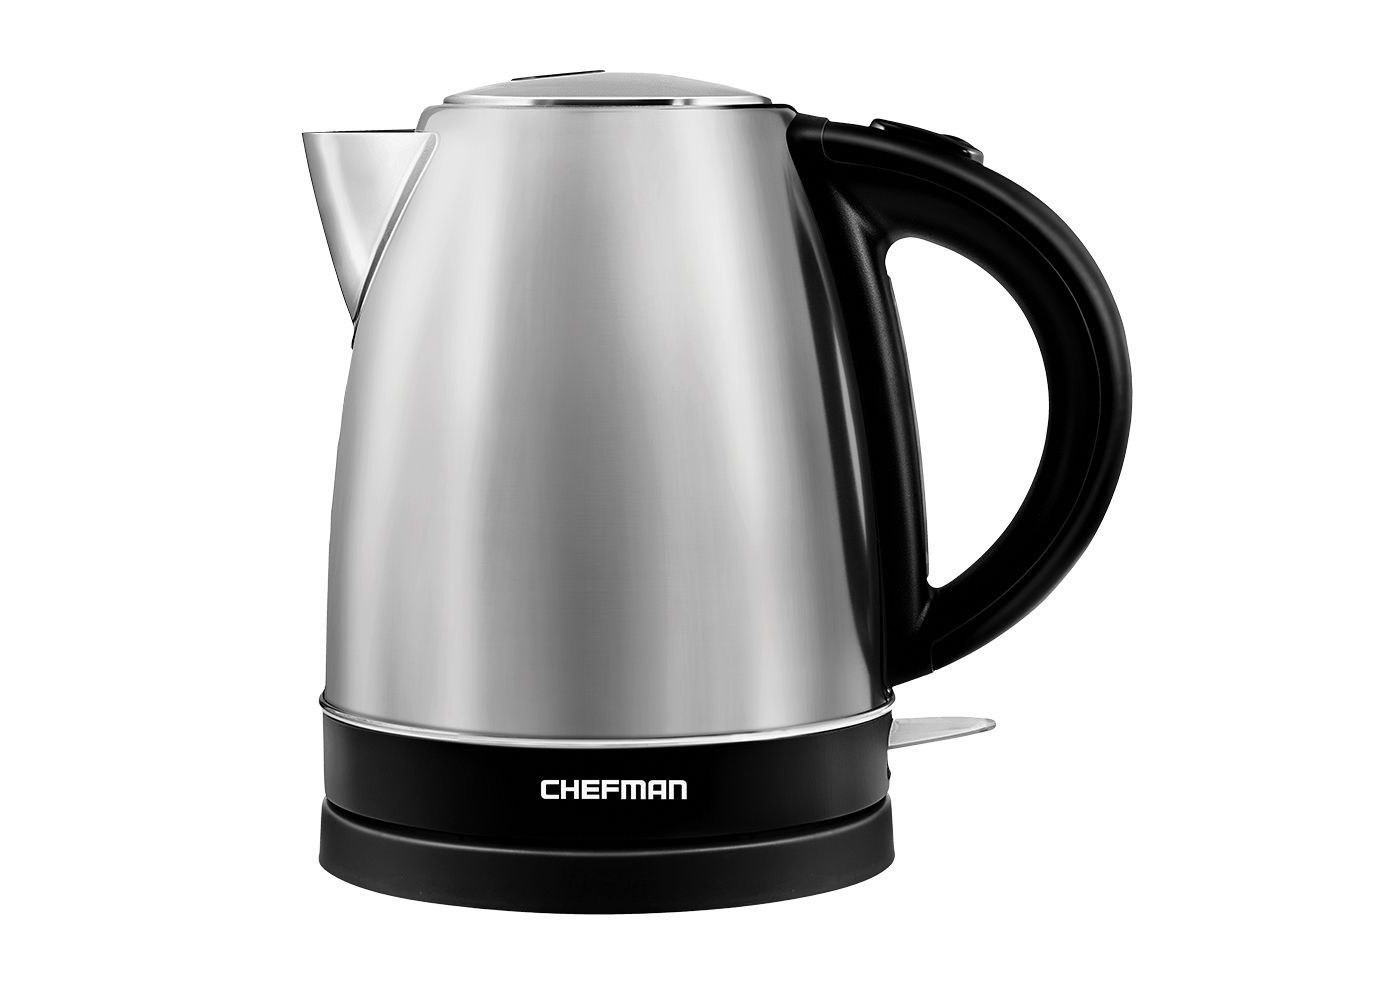 The silver electric kettle